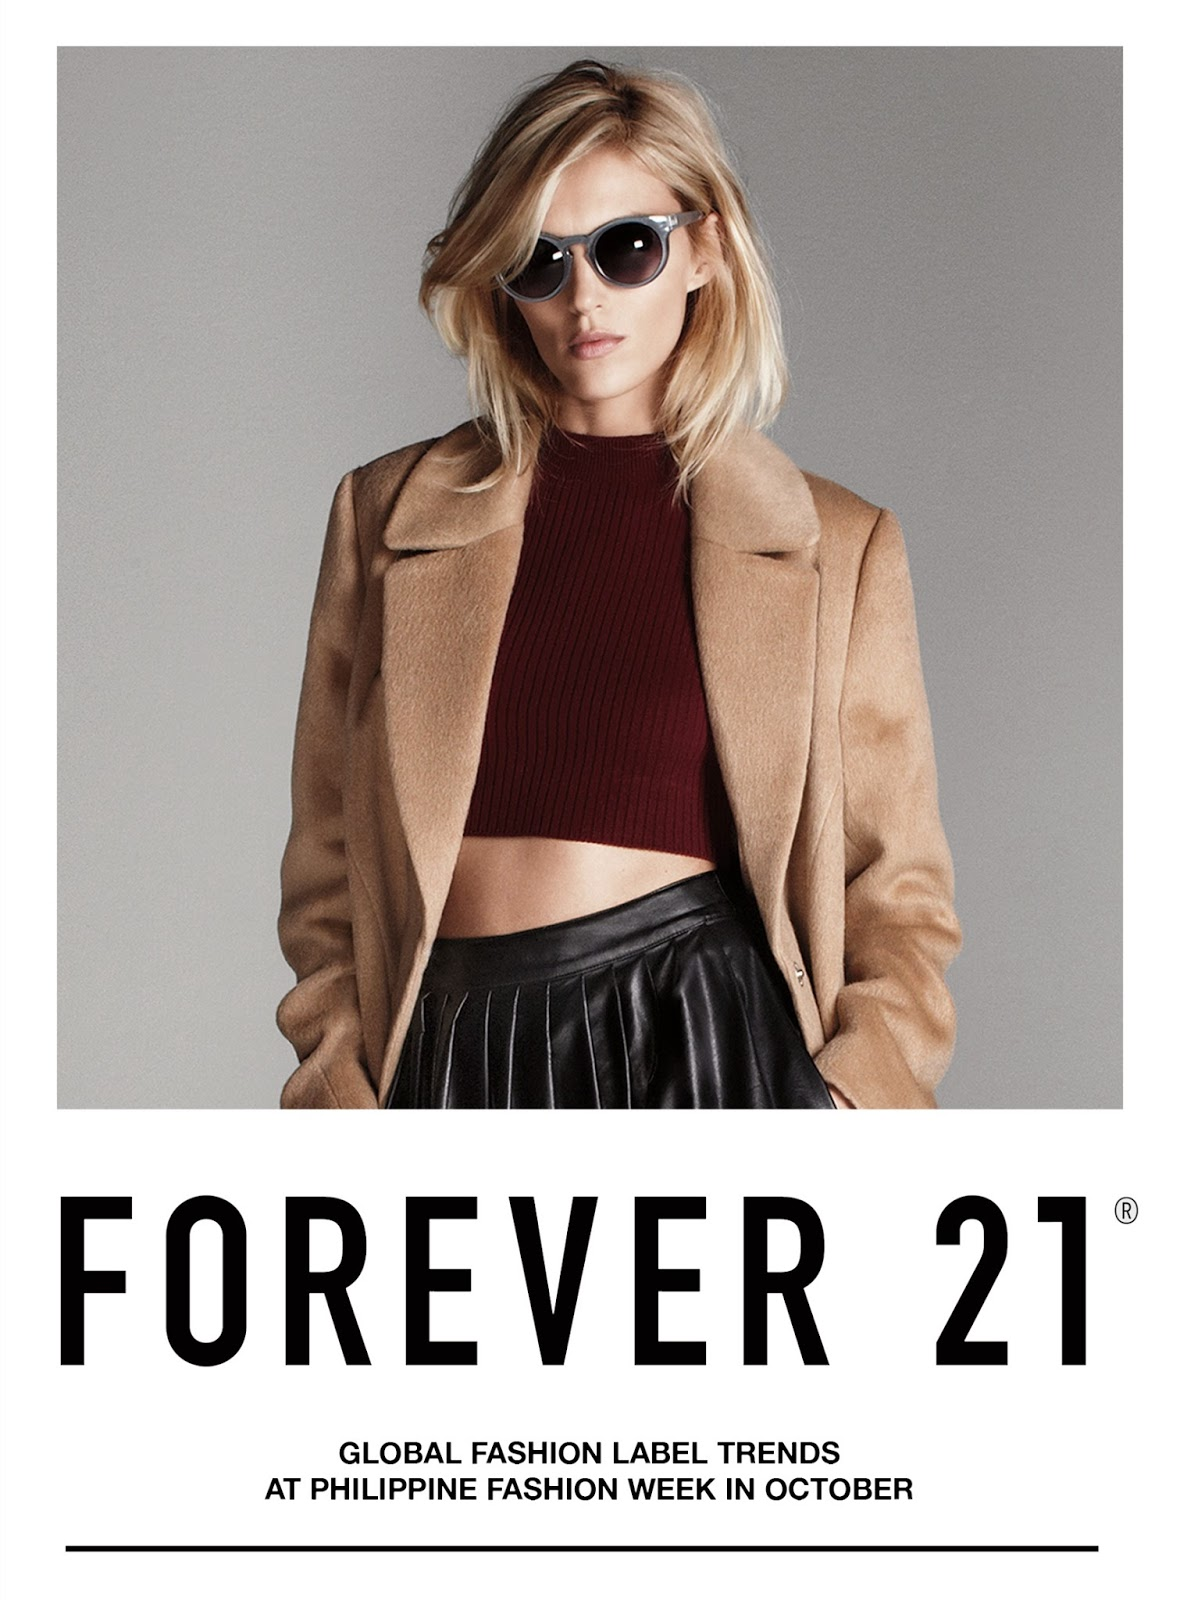 Philippine Fashion Week 2014: Forever 21 is Back!